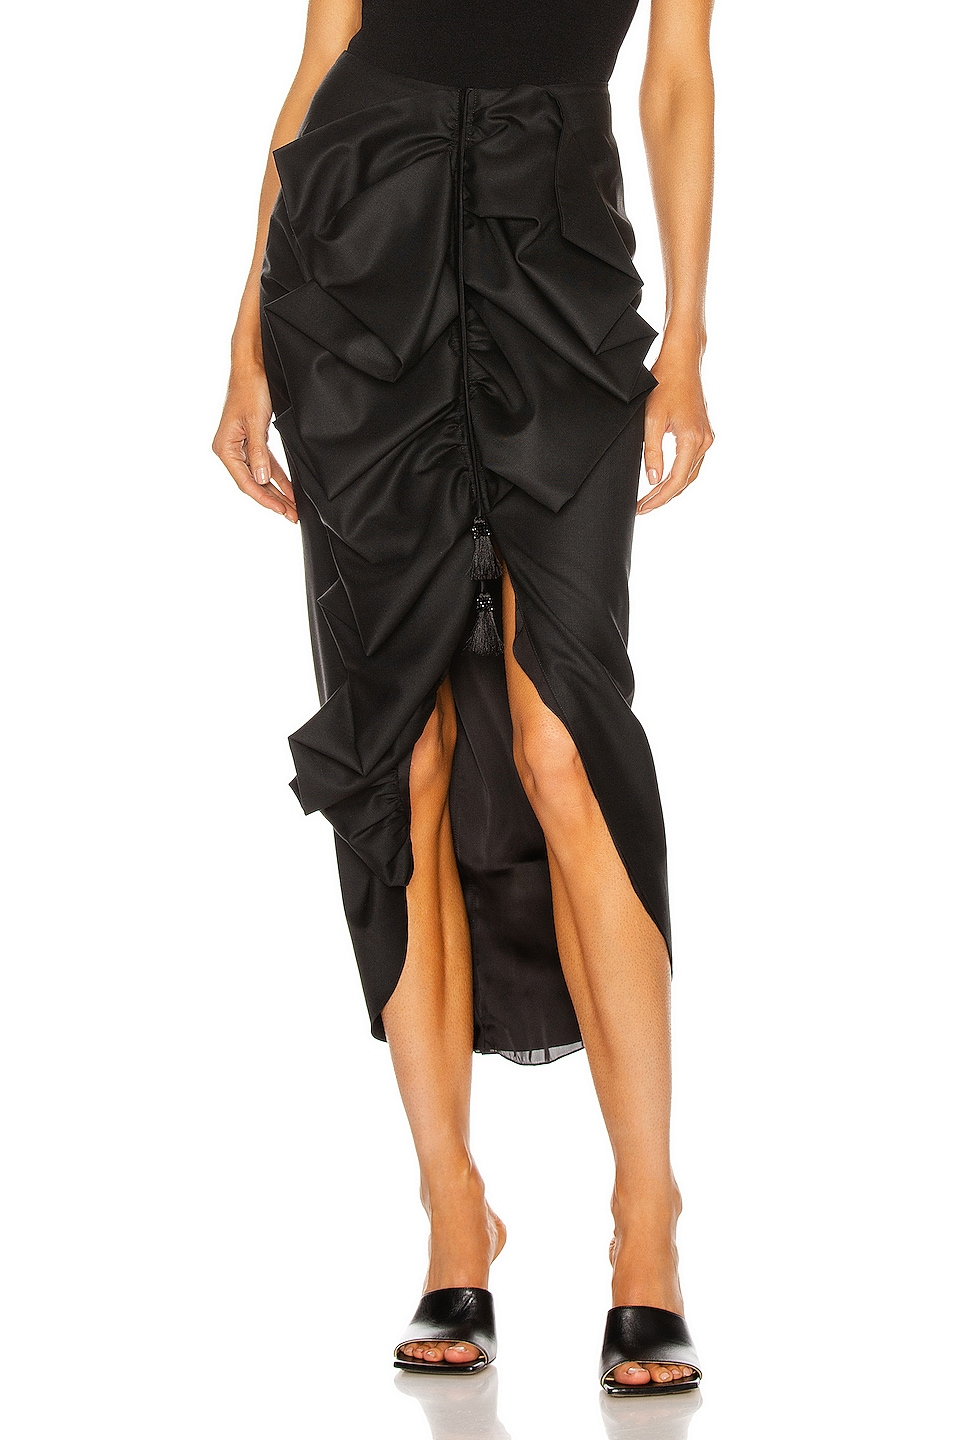 Image 1 of Johanna Ortiz Profound Opportunity Midi Skirt in Black